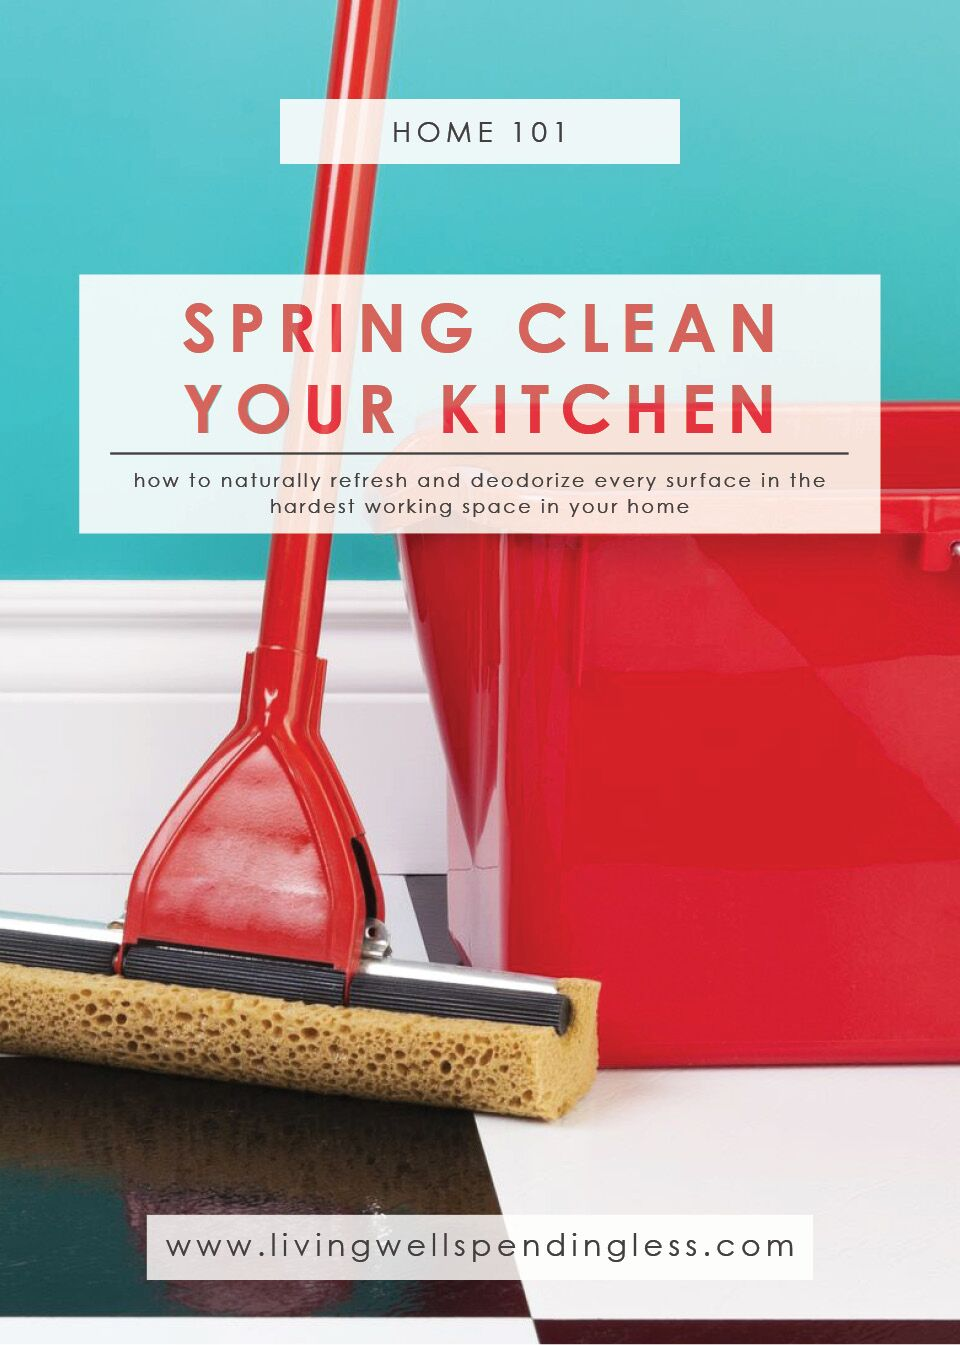 7 Ways to Deodorize Your Kitchen | Spring Clean Your Kitchen | Green and Thrifty Cleaning products